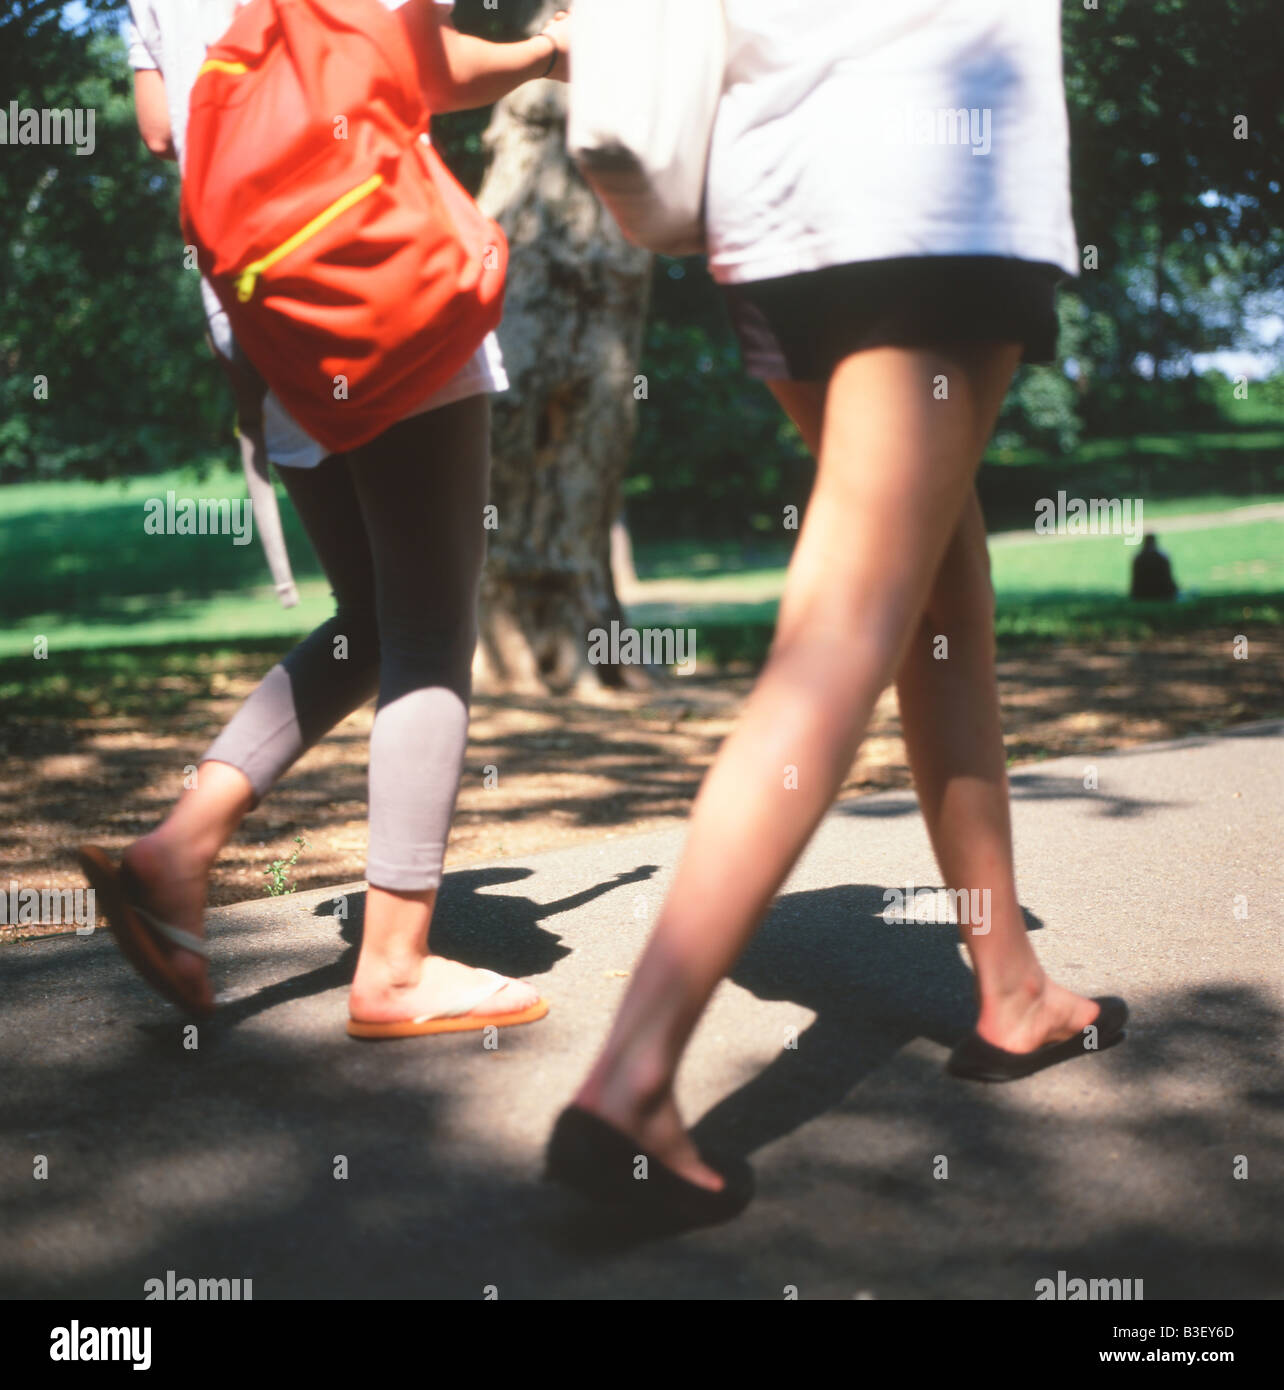 52d5d4e2b6a The blurry legs of two young women walking with rucksacks and wearing  flipflops in Central Park